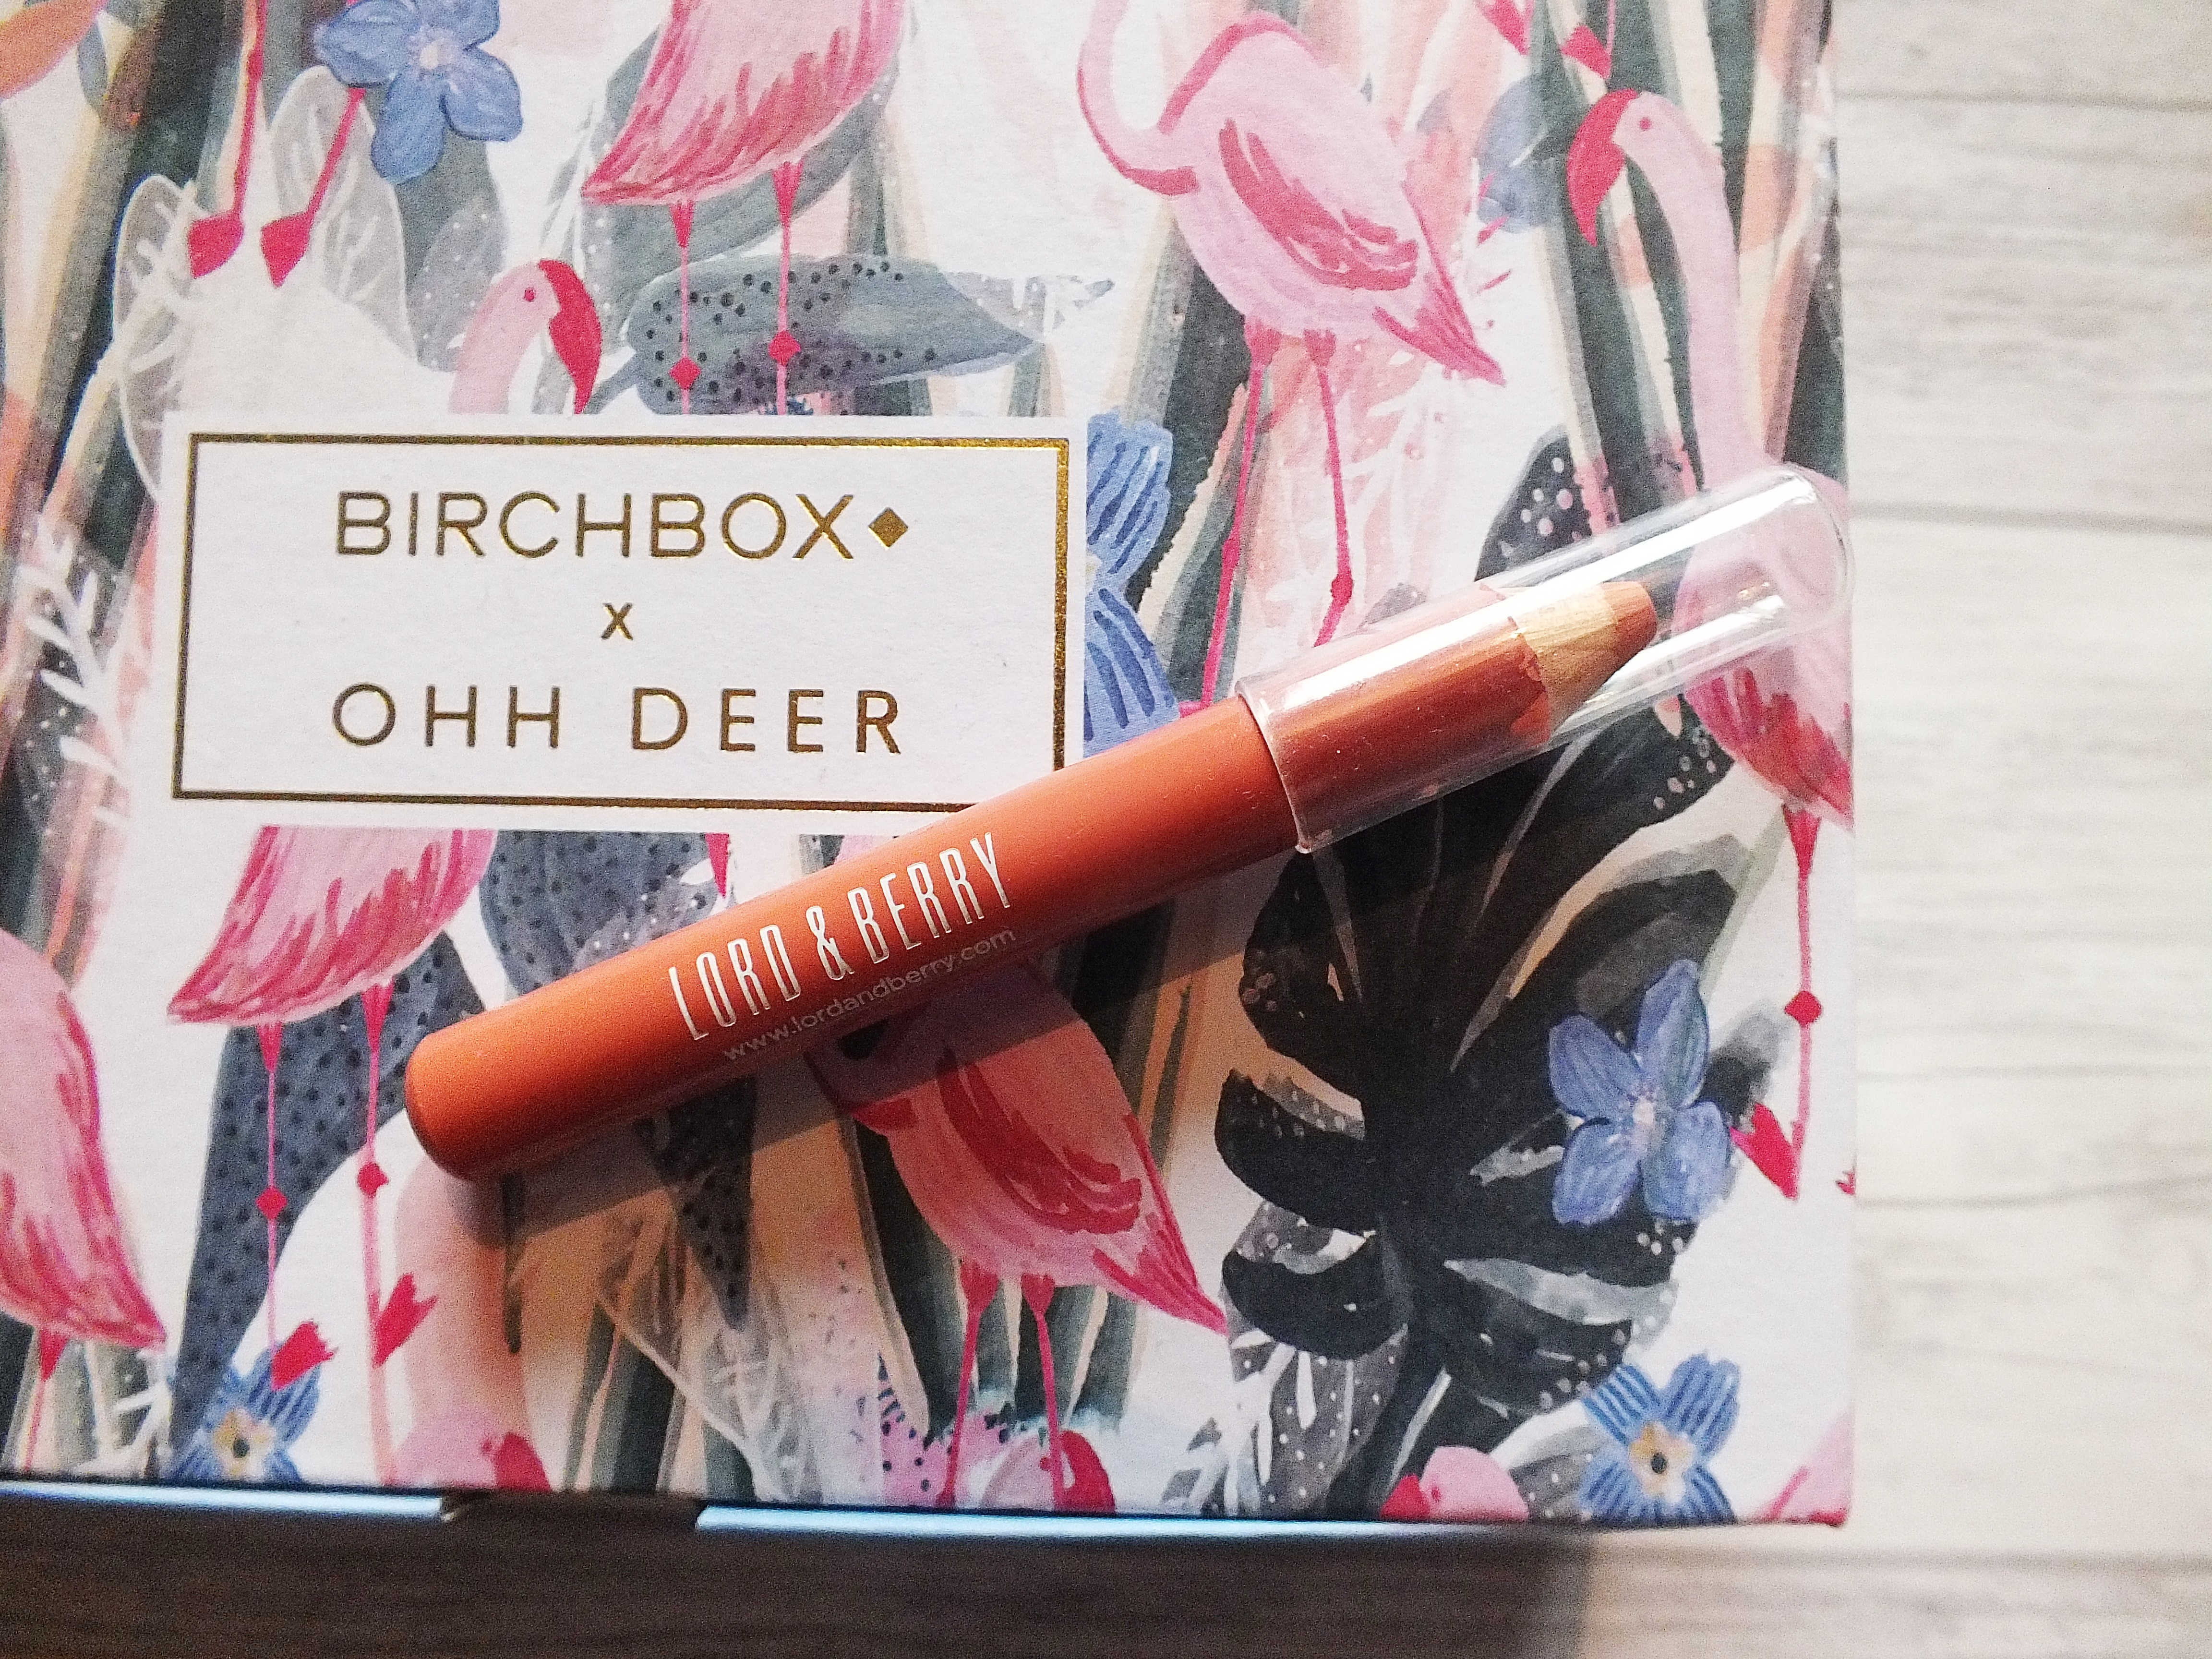 Lord and Berry Blusher Crayon in Peach colour on top of Birchbox